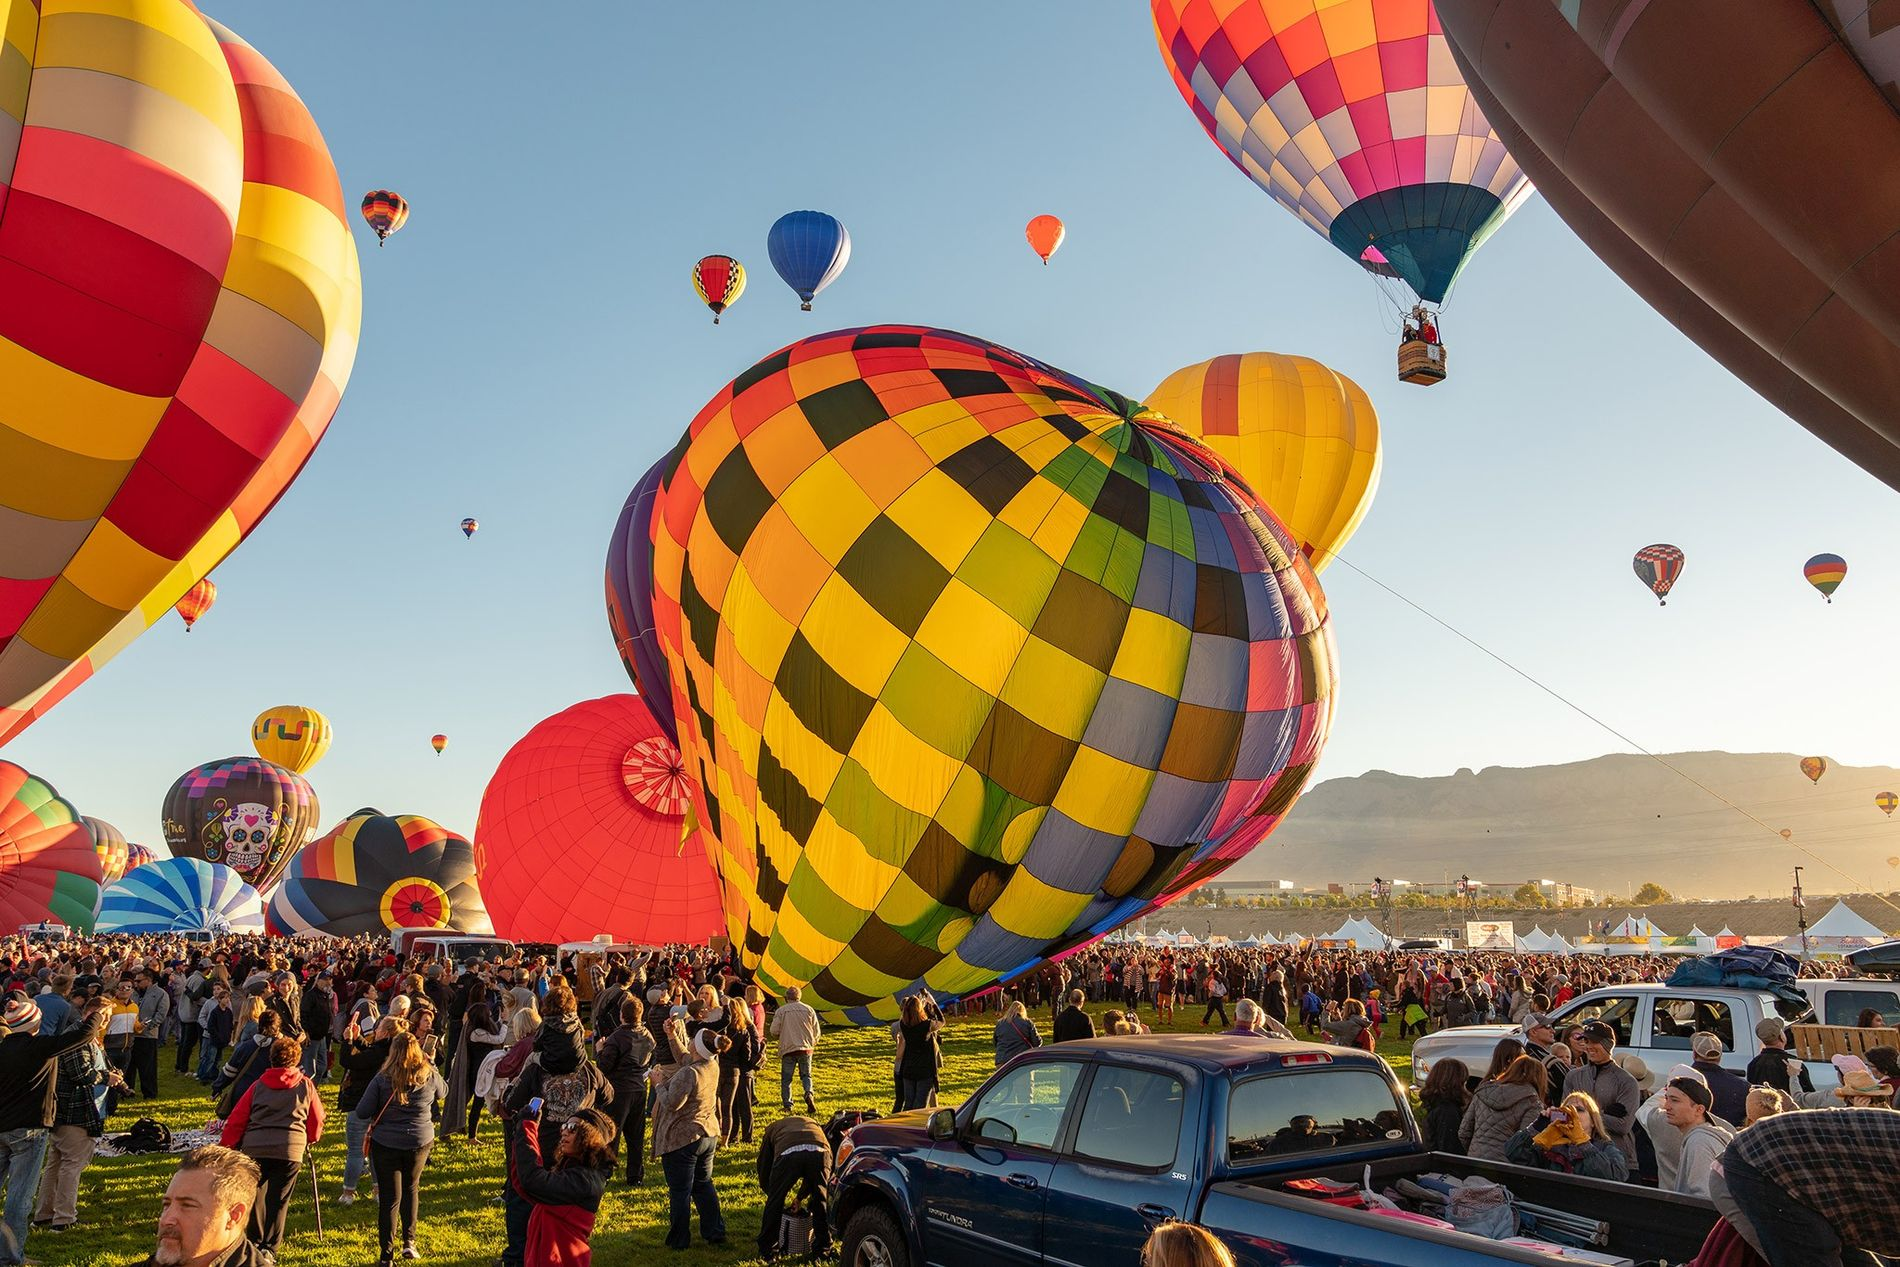 Pilots prepare their balloons to ascend shortly after dawn at the Albuquerque International Balloon Fiesta.